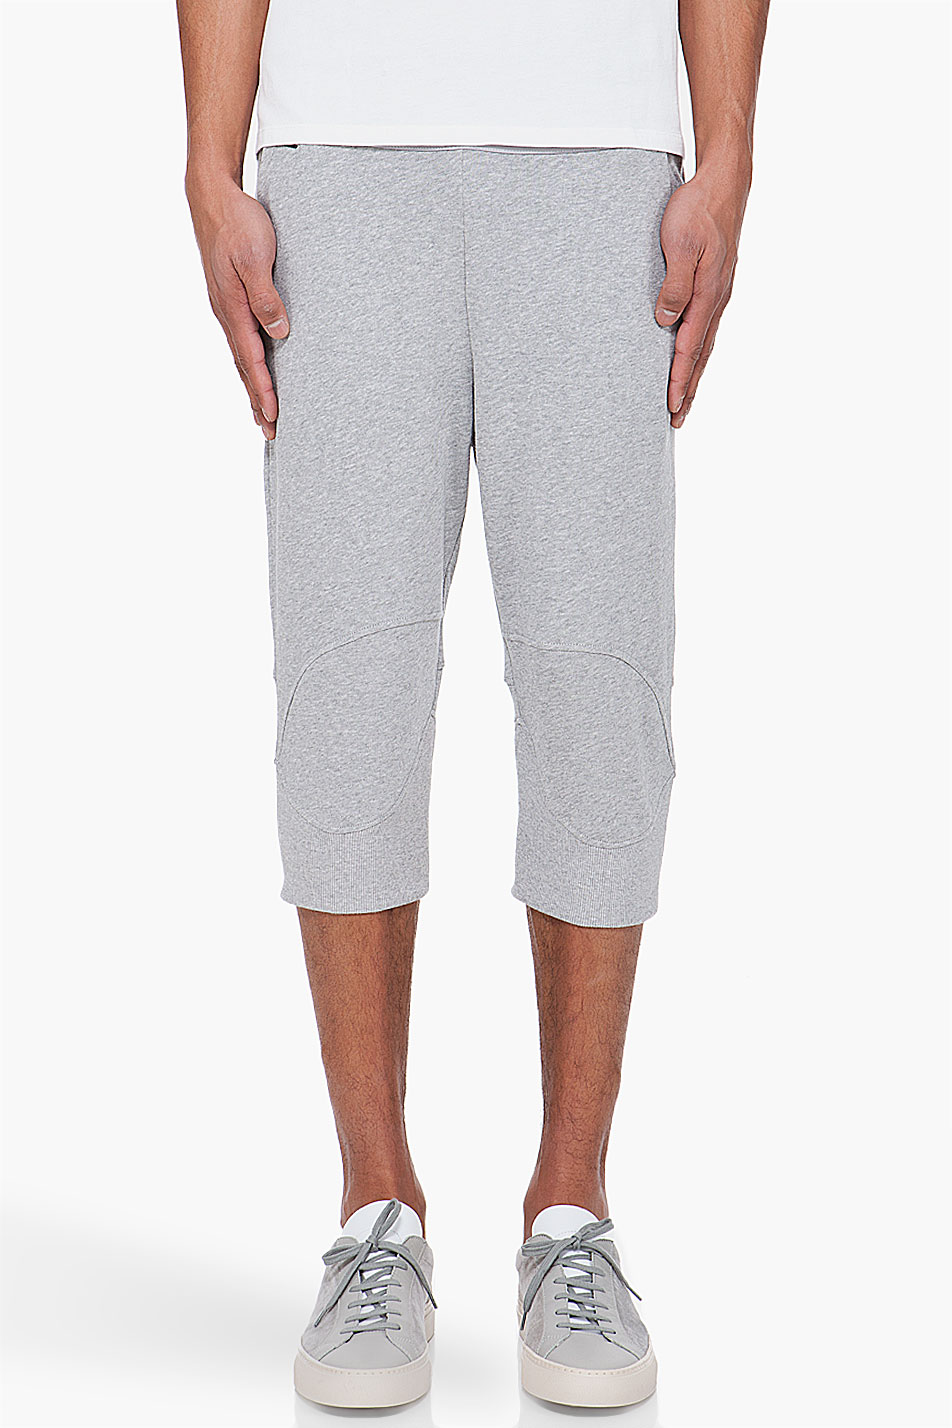 Adidas Slvr Cropped Fencing Pants In Gray For Men Grey